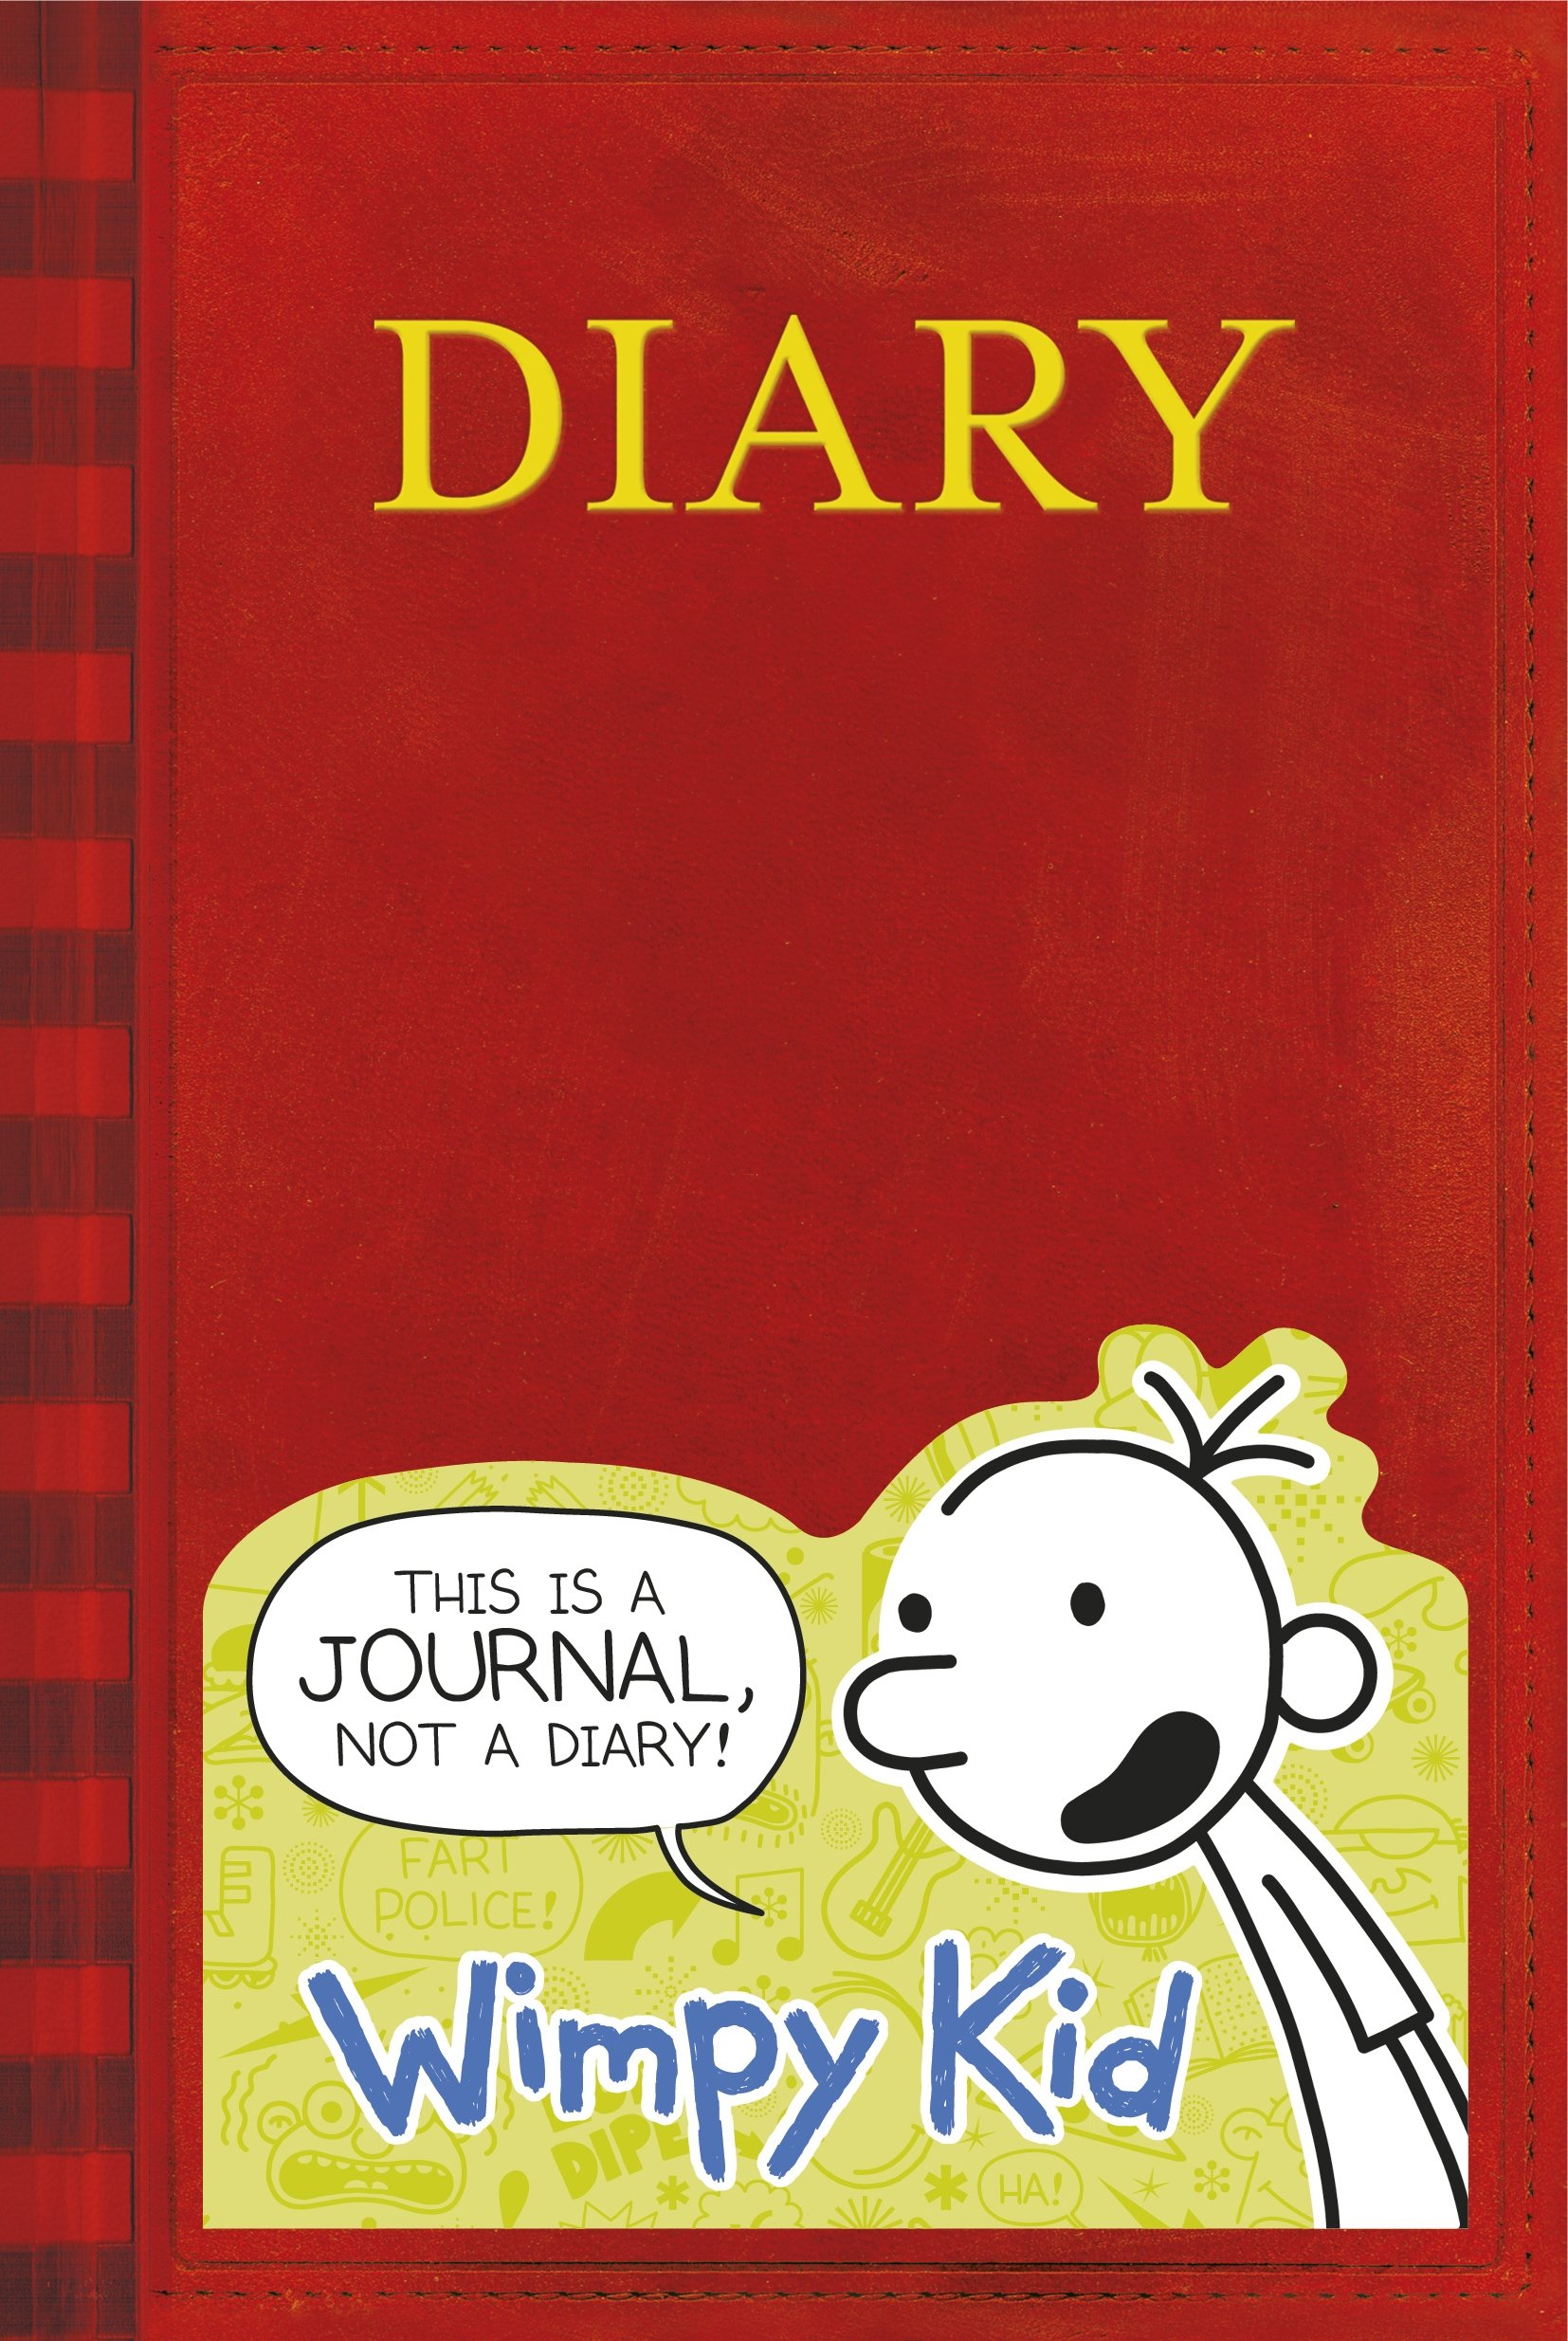 Diary of a wimpy kid book journal amazon jeff kinney diary of a wimpy kid book journal amazon jeff kinney 5060312812734 books solutioingenieria